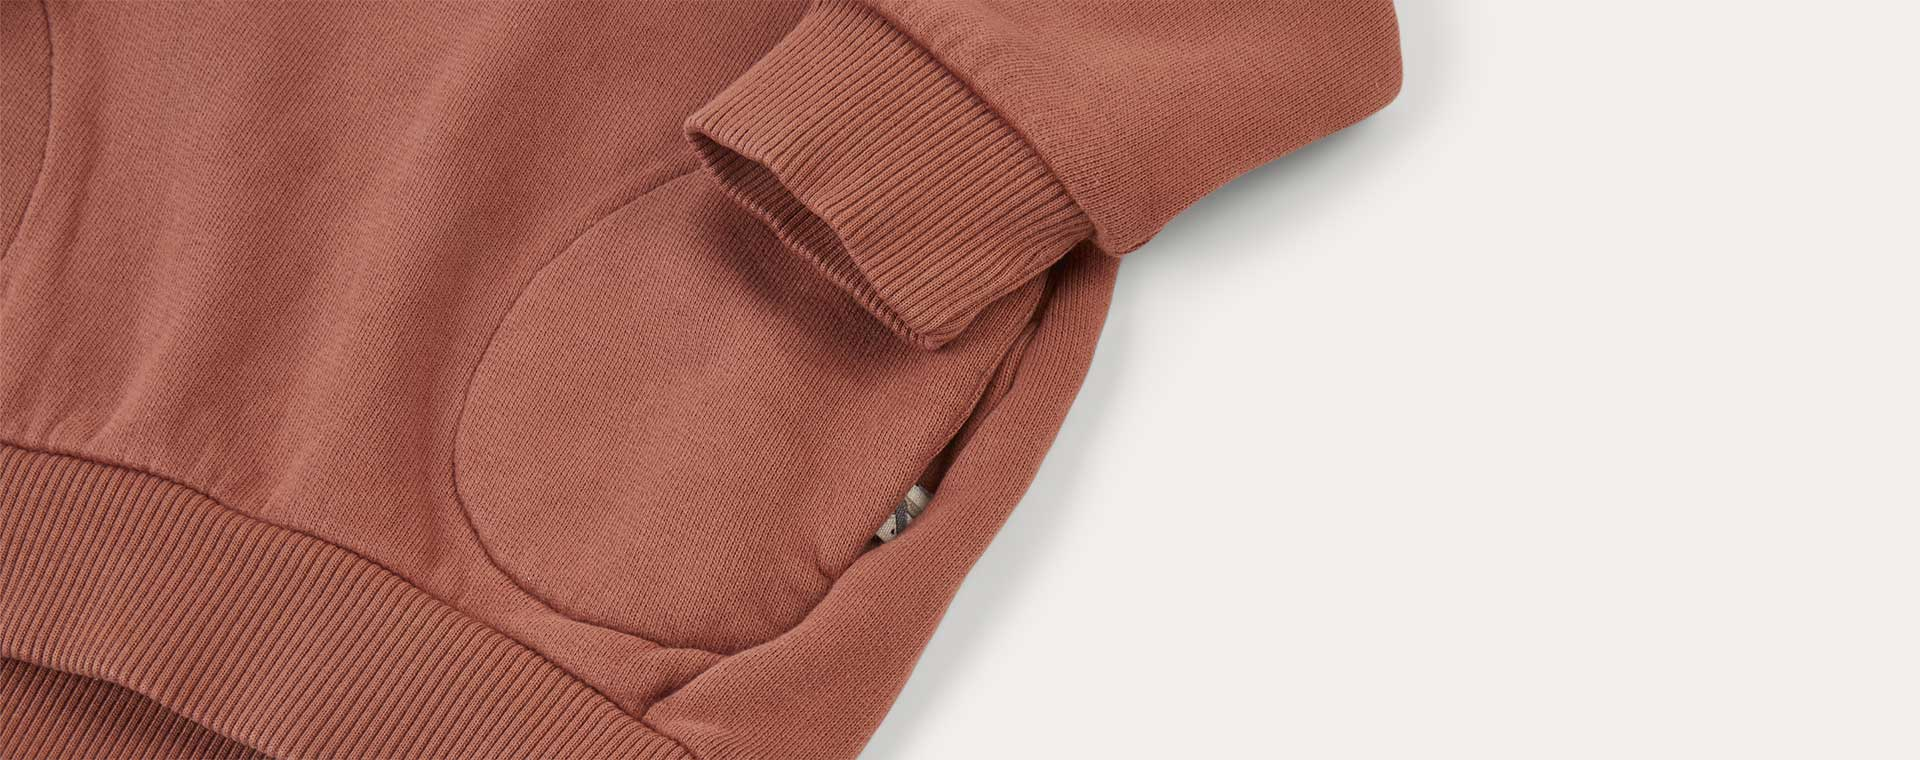 Copper KIDLY Label Pocket Sweatshirt